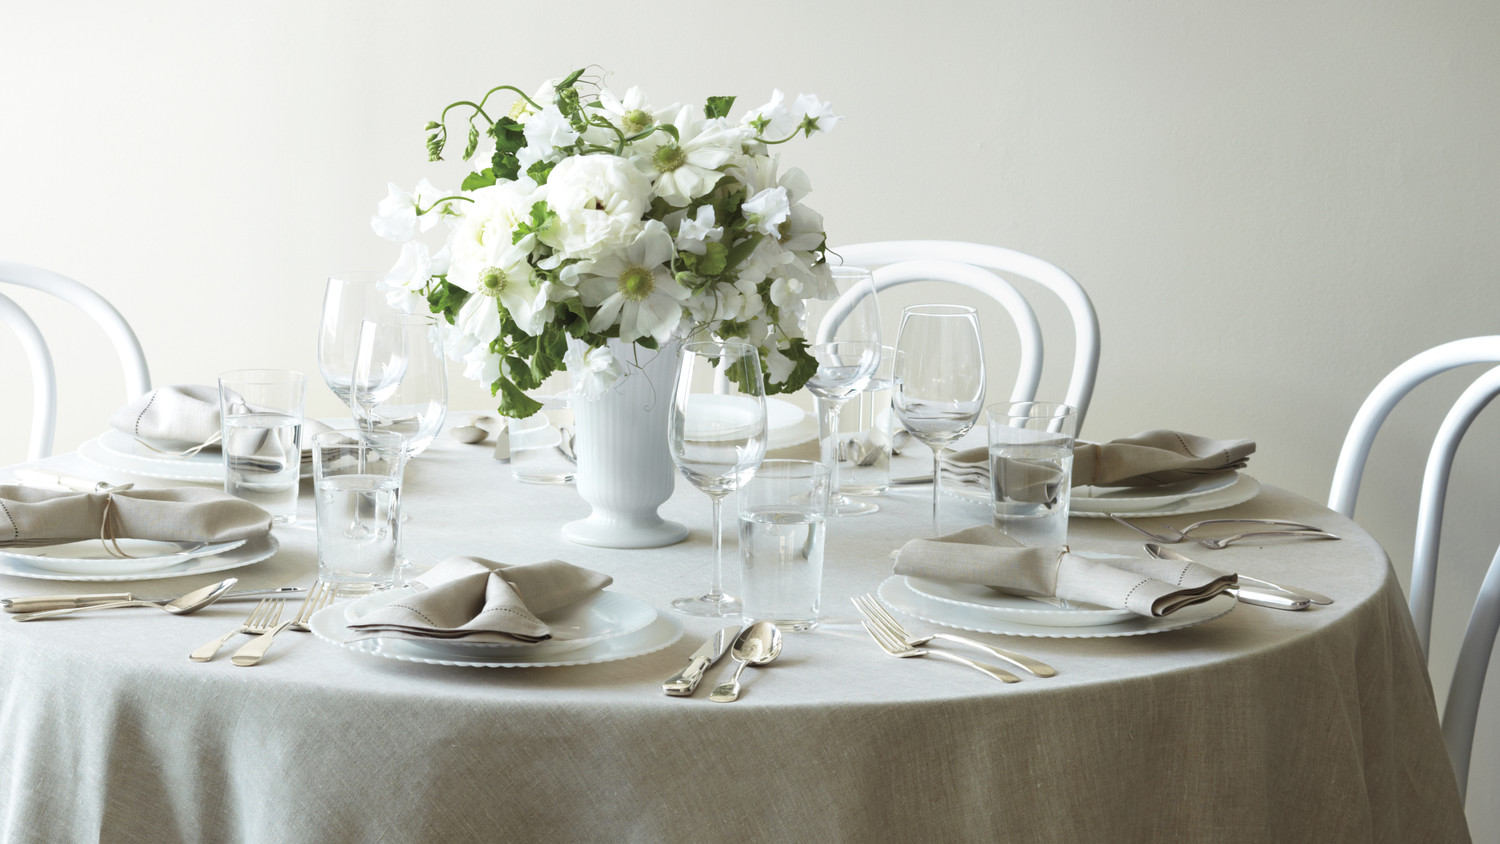 Easy-to-Make Paper Decorations For Your Wedding | Martha Stewart ...